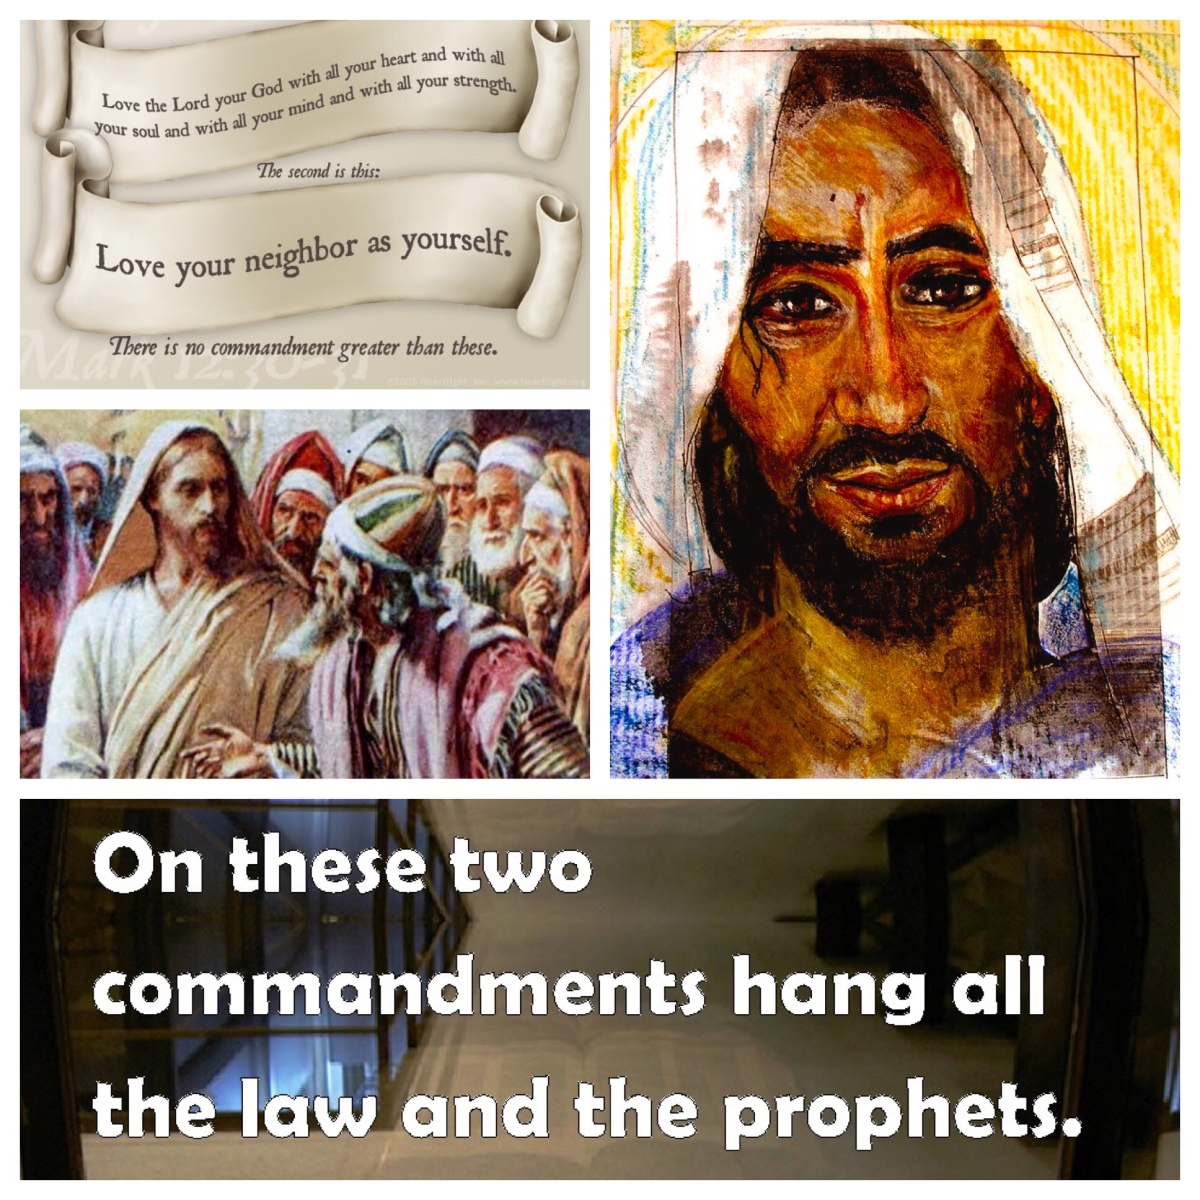 On these two commandments hang all the law and the prophets (Matt 22)